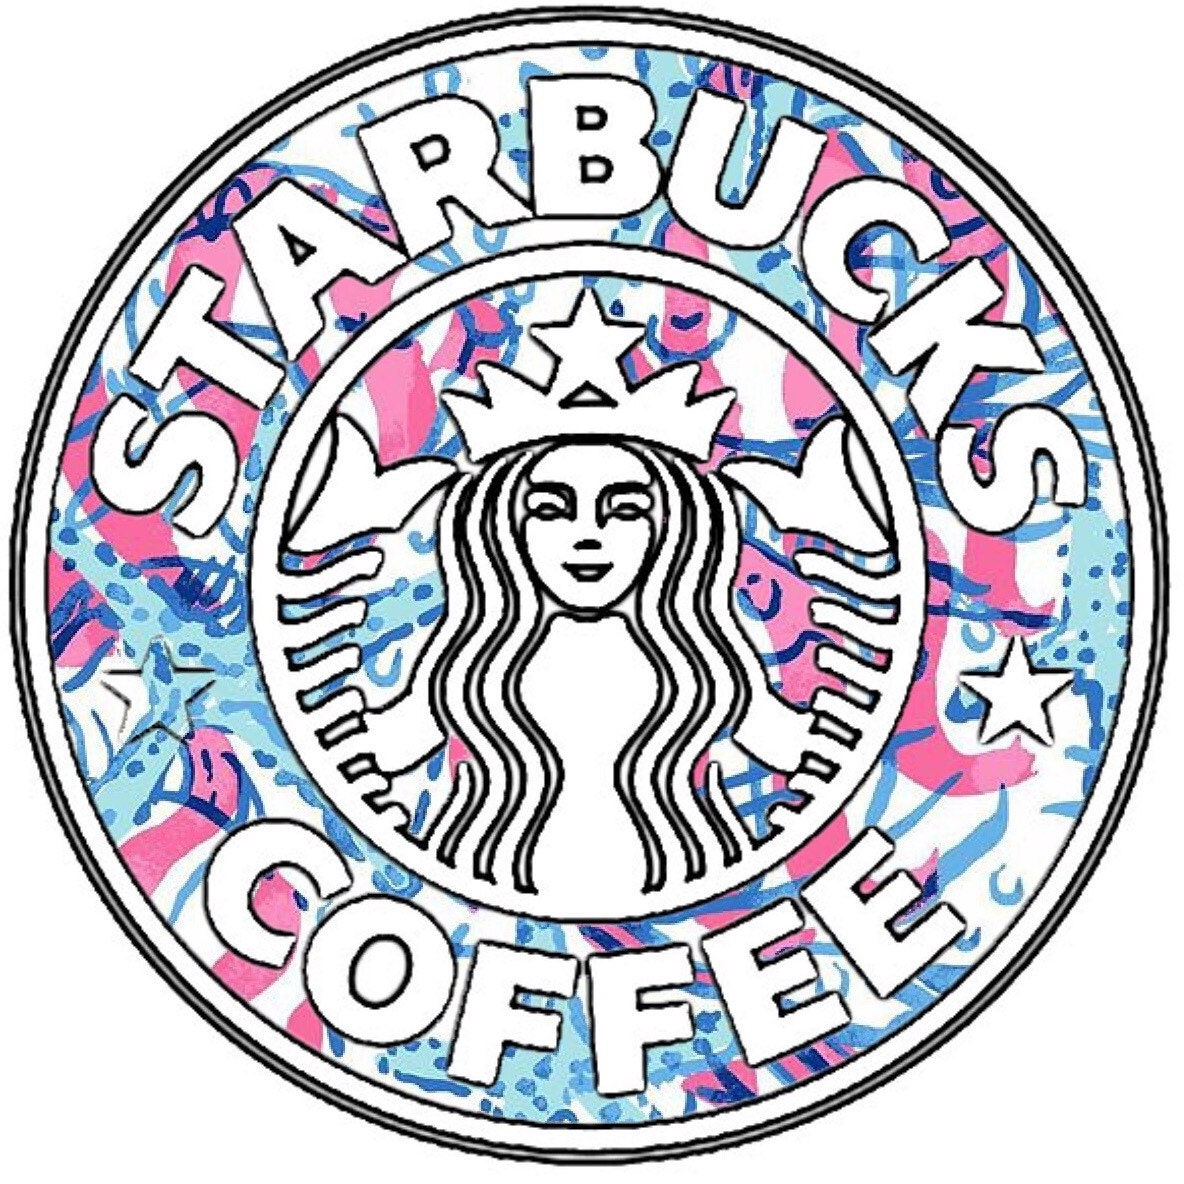 lilly pulitzer vinyl starbucks sticker by thelittlebluebow88